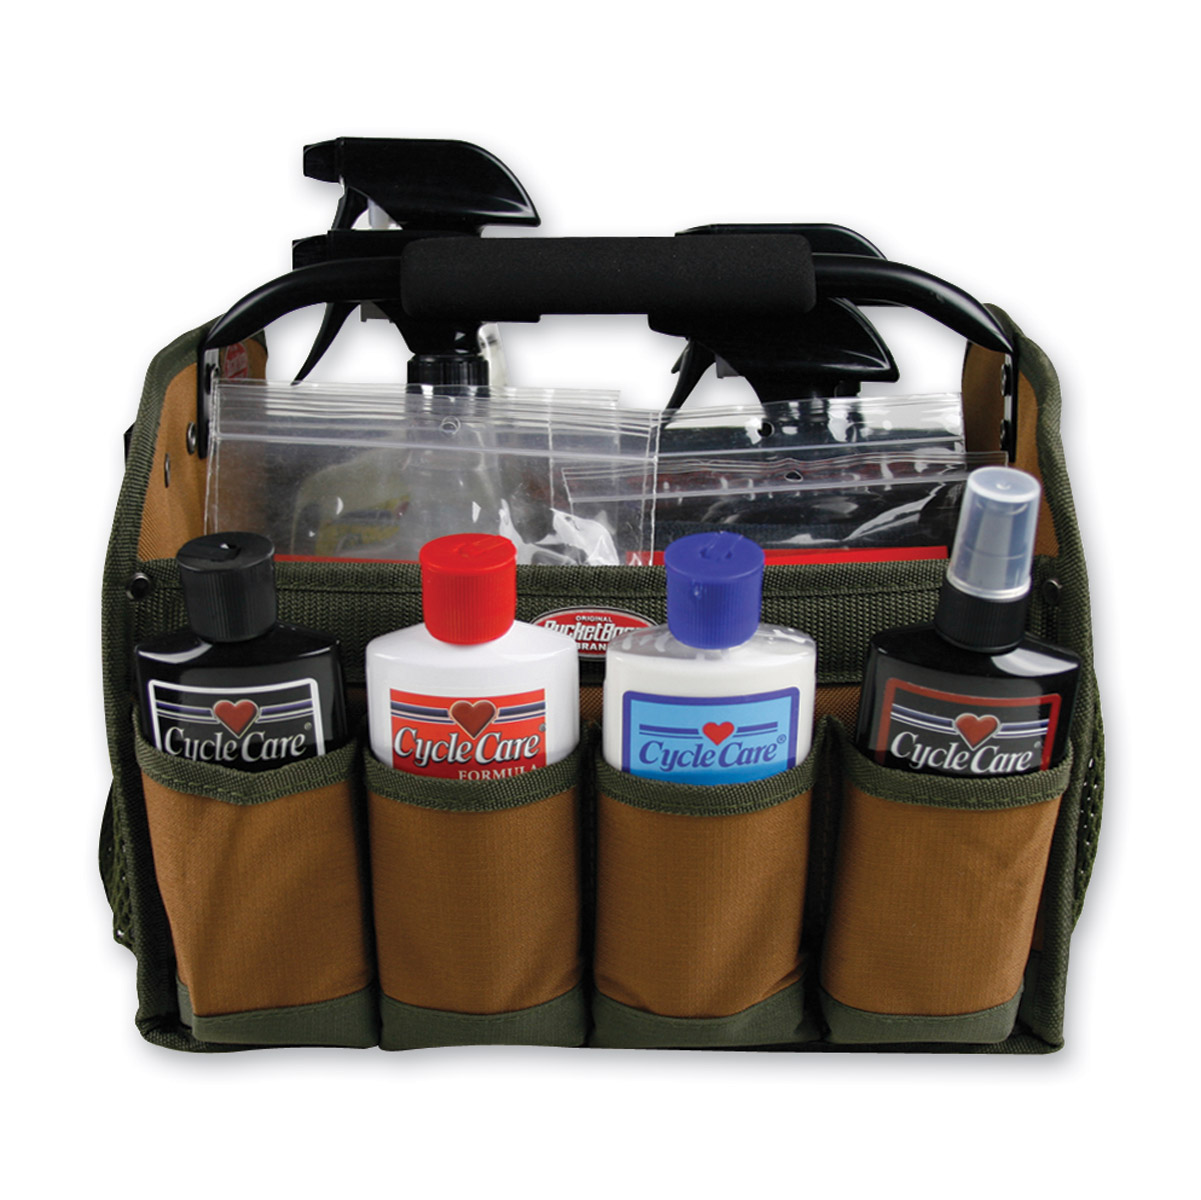 Cycle Care Riders Choice Express Tote